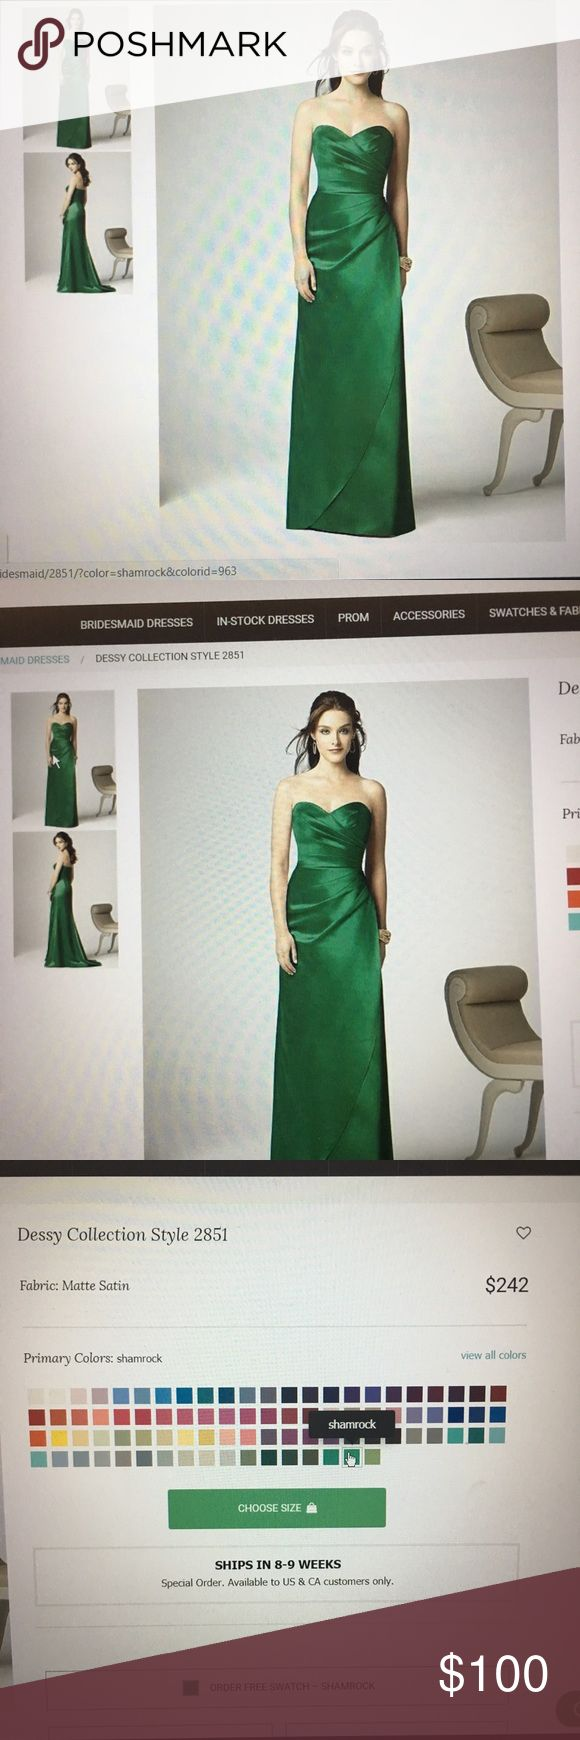 "Dessy Collection Style 2851 - extra long Coming soon! Wore this once for a jewel themed wedding. Gorgeous Shamrock green 🍀ordered it with extra length since I'm 5'7"" Will post more pics once I've had a chance to pull it out of the closet. Reasonable offers accepted Dessy Dresses Wedding"